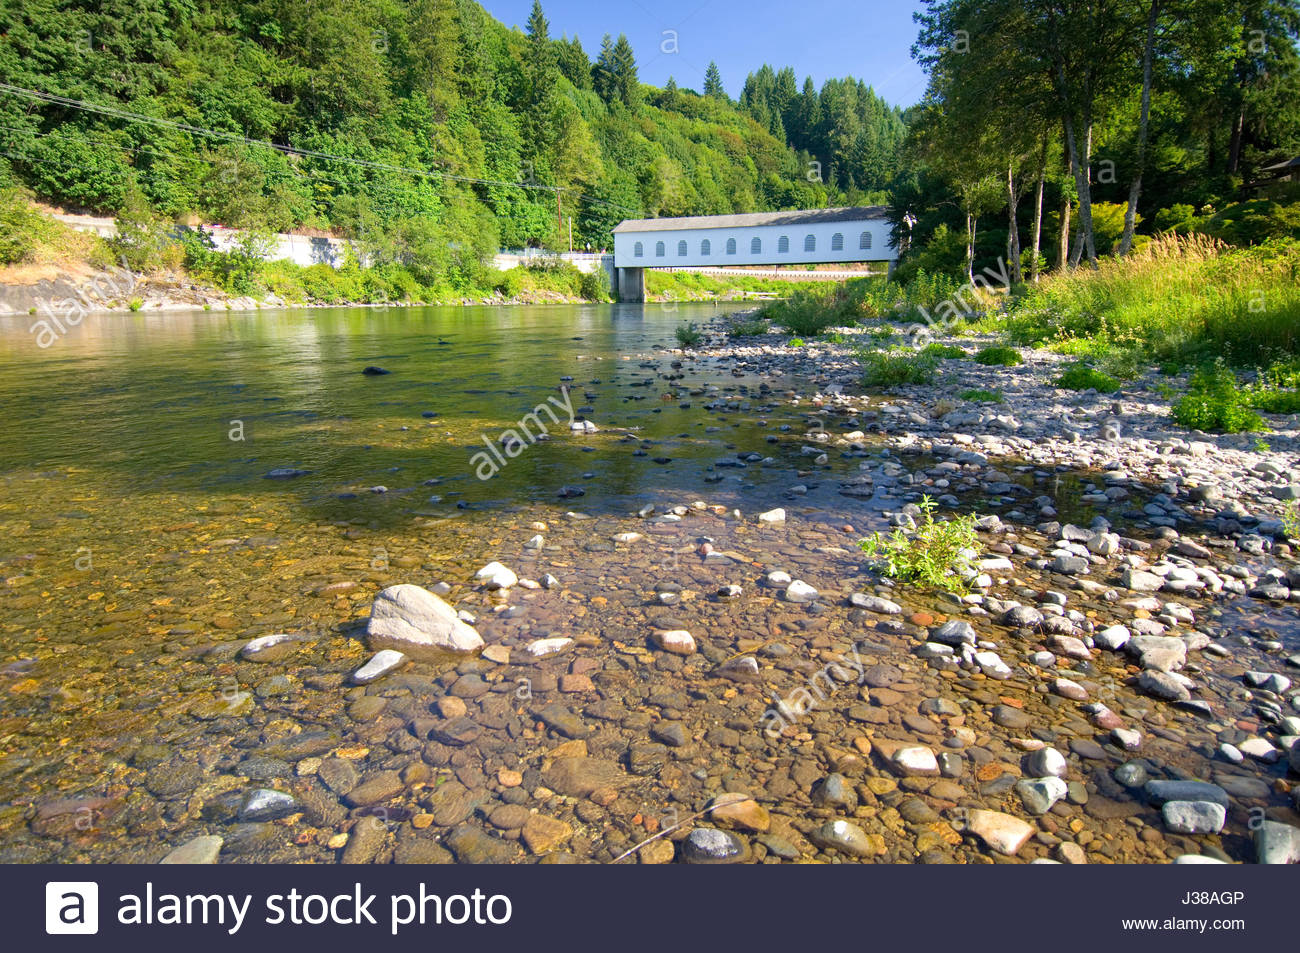 Built In 1938 Stock Photos & Built In 1938 Stock Images - Alamy